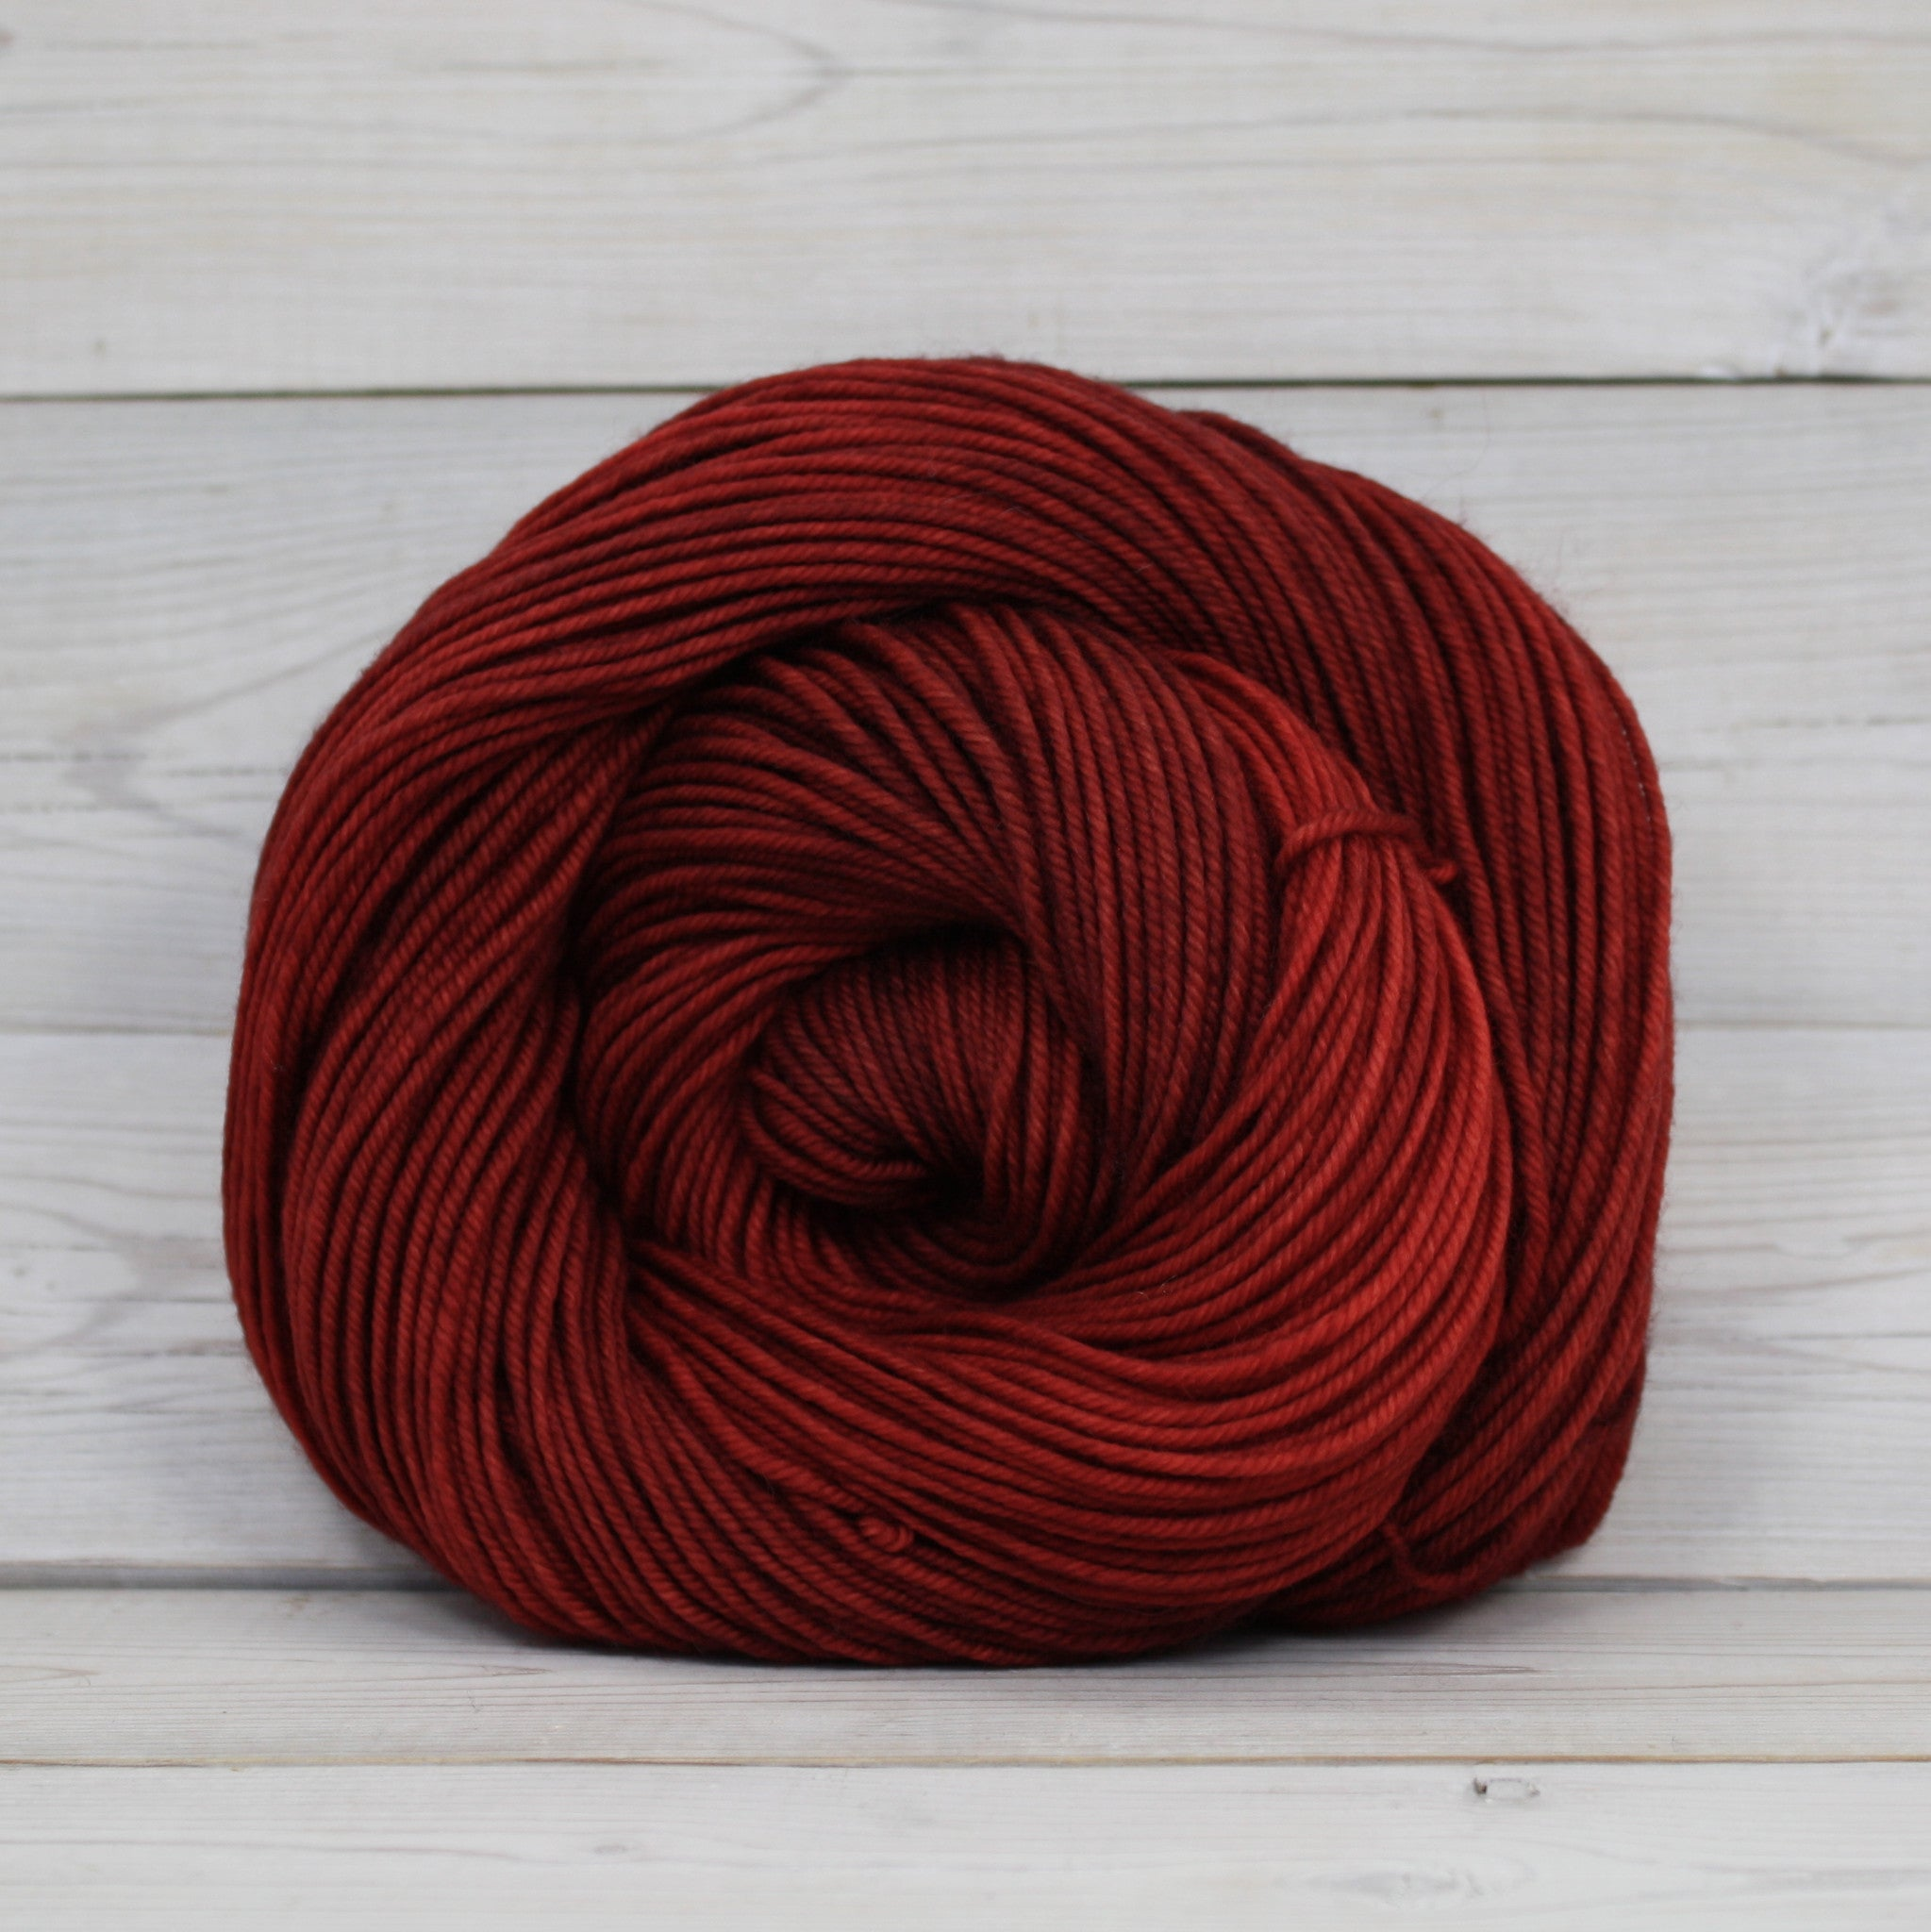 Luna Grey Fiber Arts Calypso Yarn | Colorway: Brickhouse